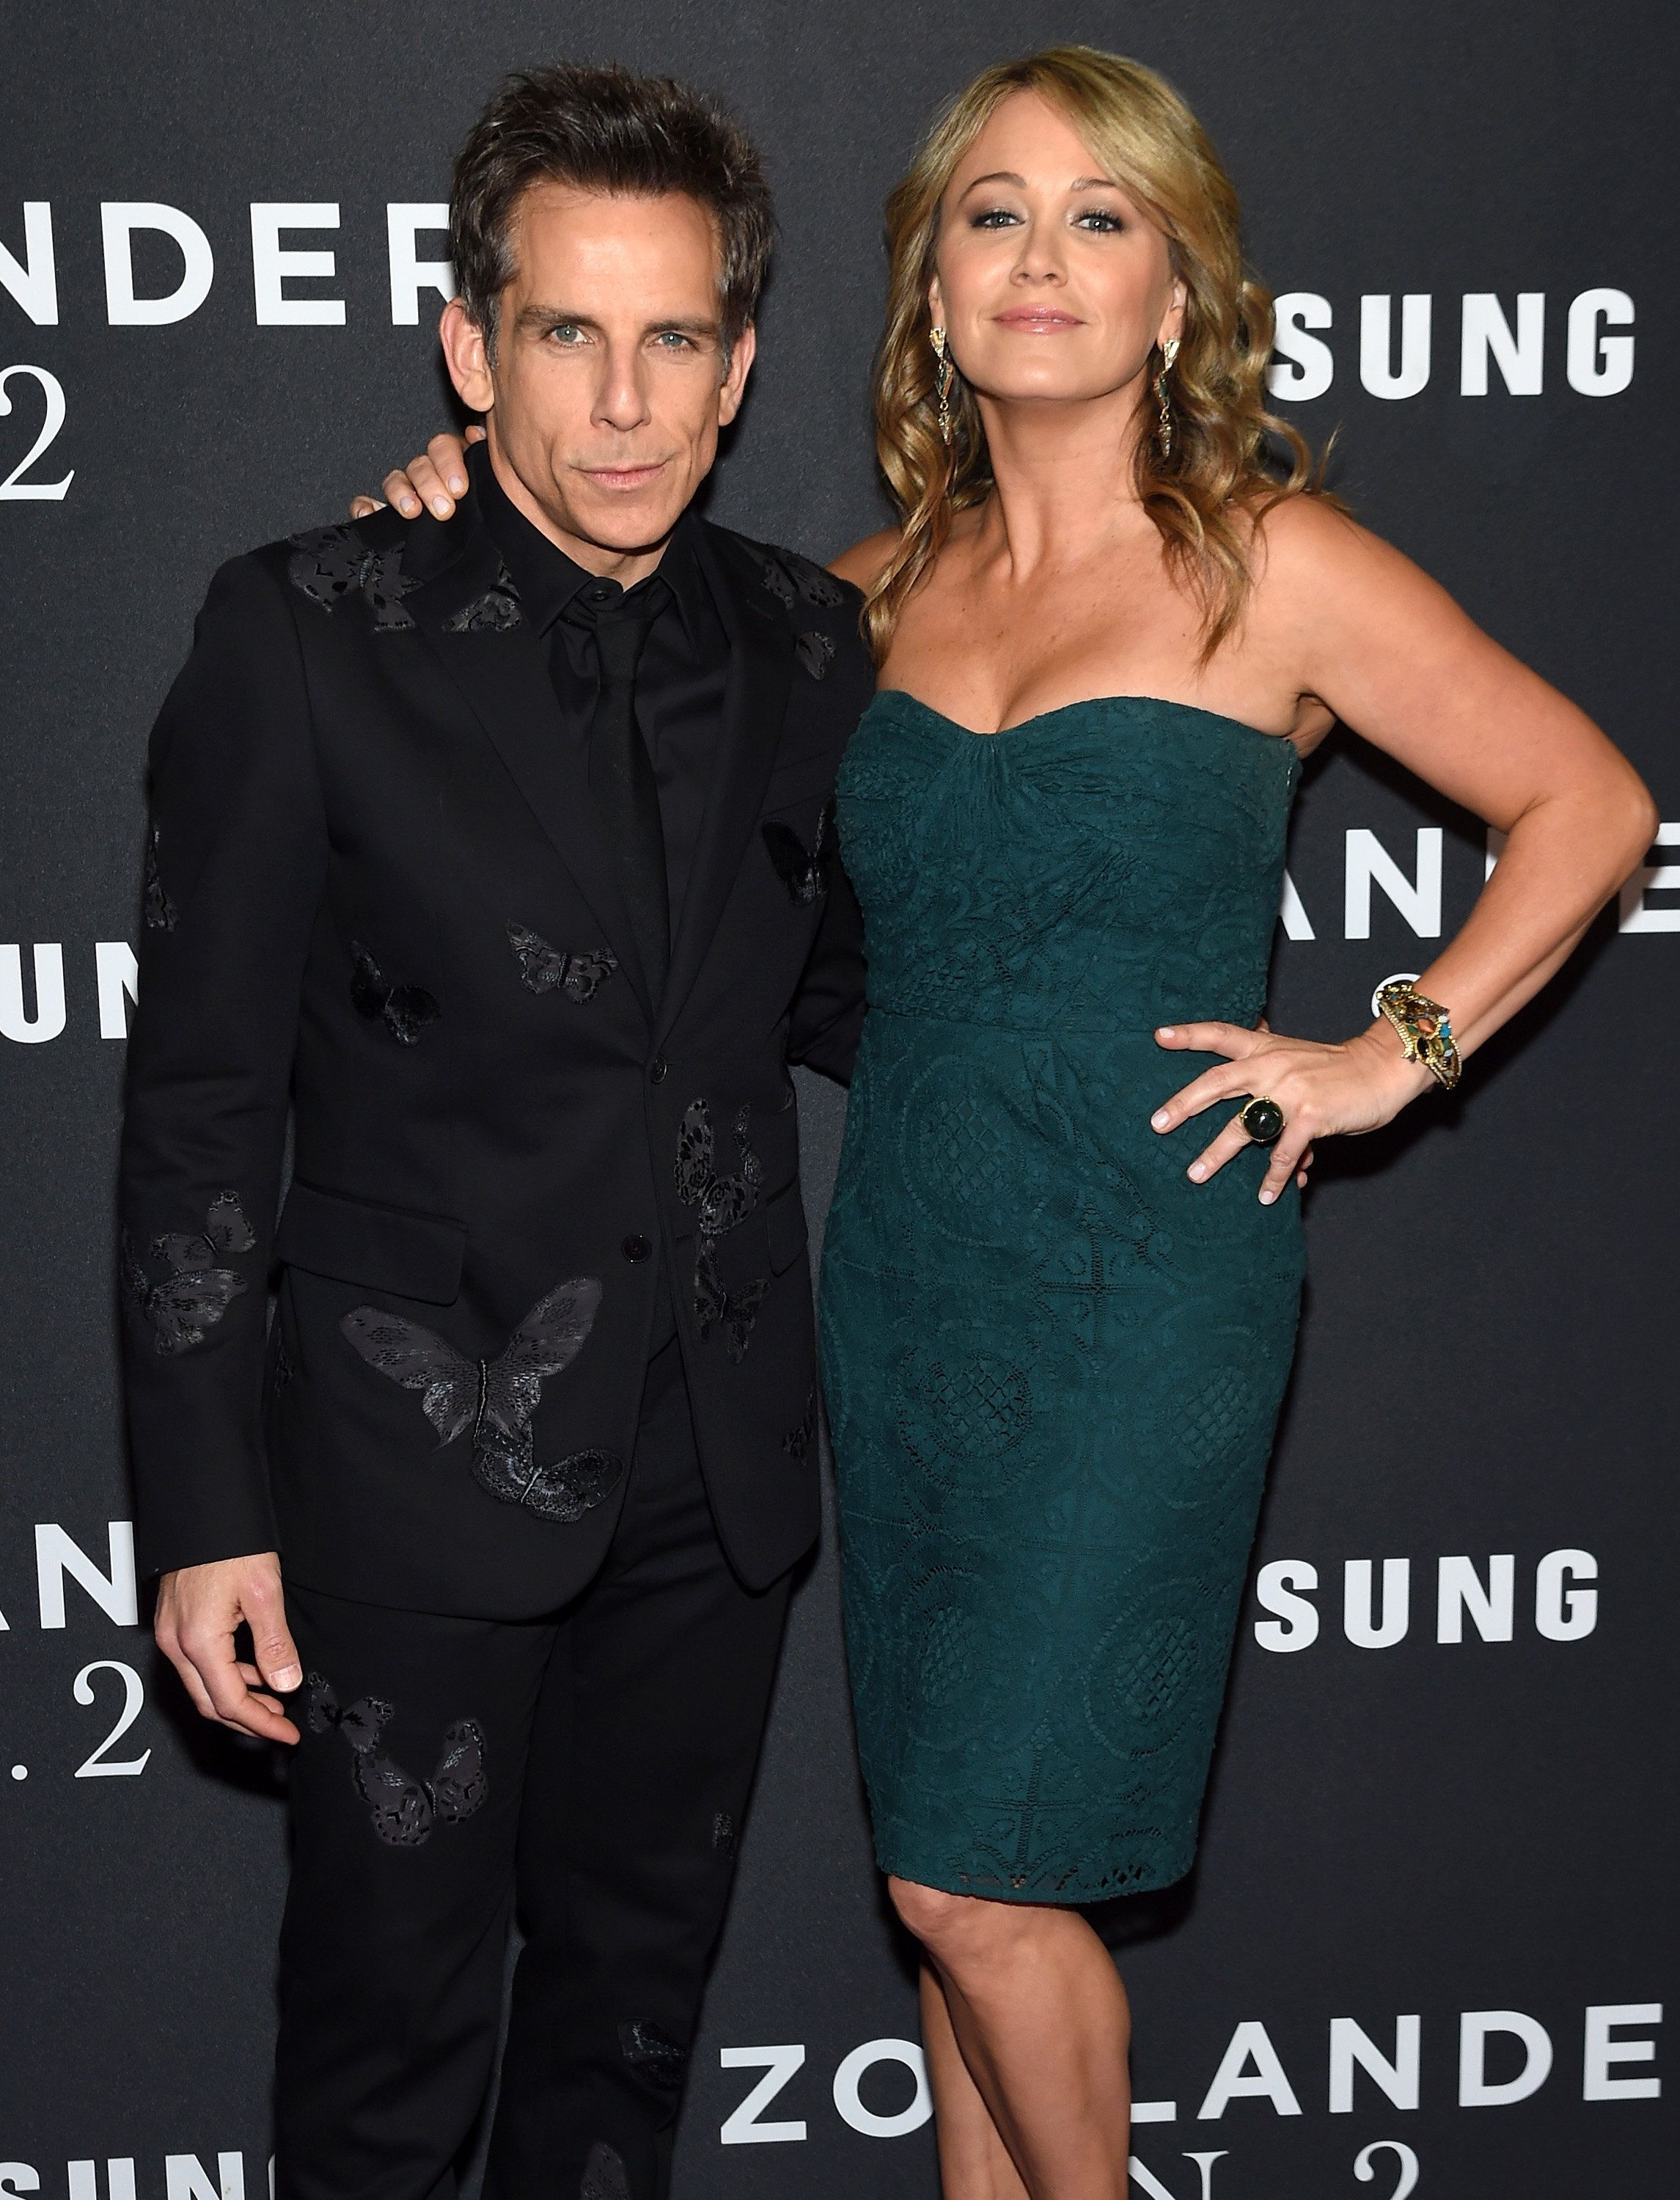 NEW YORK, NY - FEBRUARY 09:  Actors Ben Stiller (L) and Christine Taylor attend the 'Zoolander 2' World Premiere  at Alice Tully Hall on February 9, 2016 in New York City.  (Photo by Jamie McCarthy/WireImage)